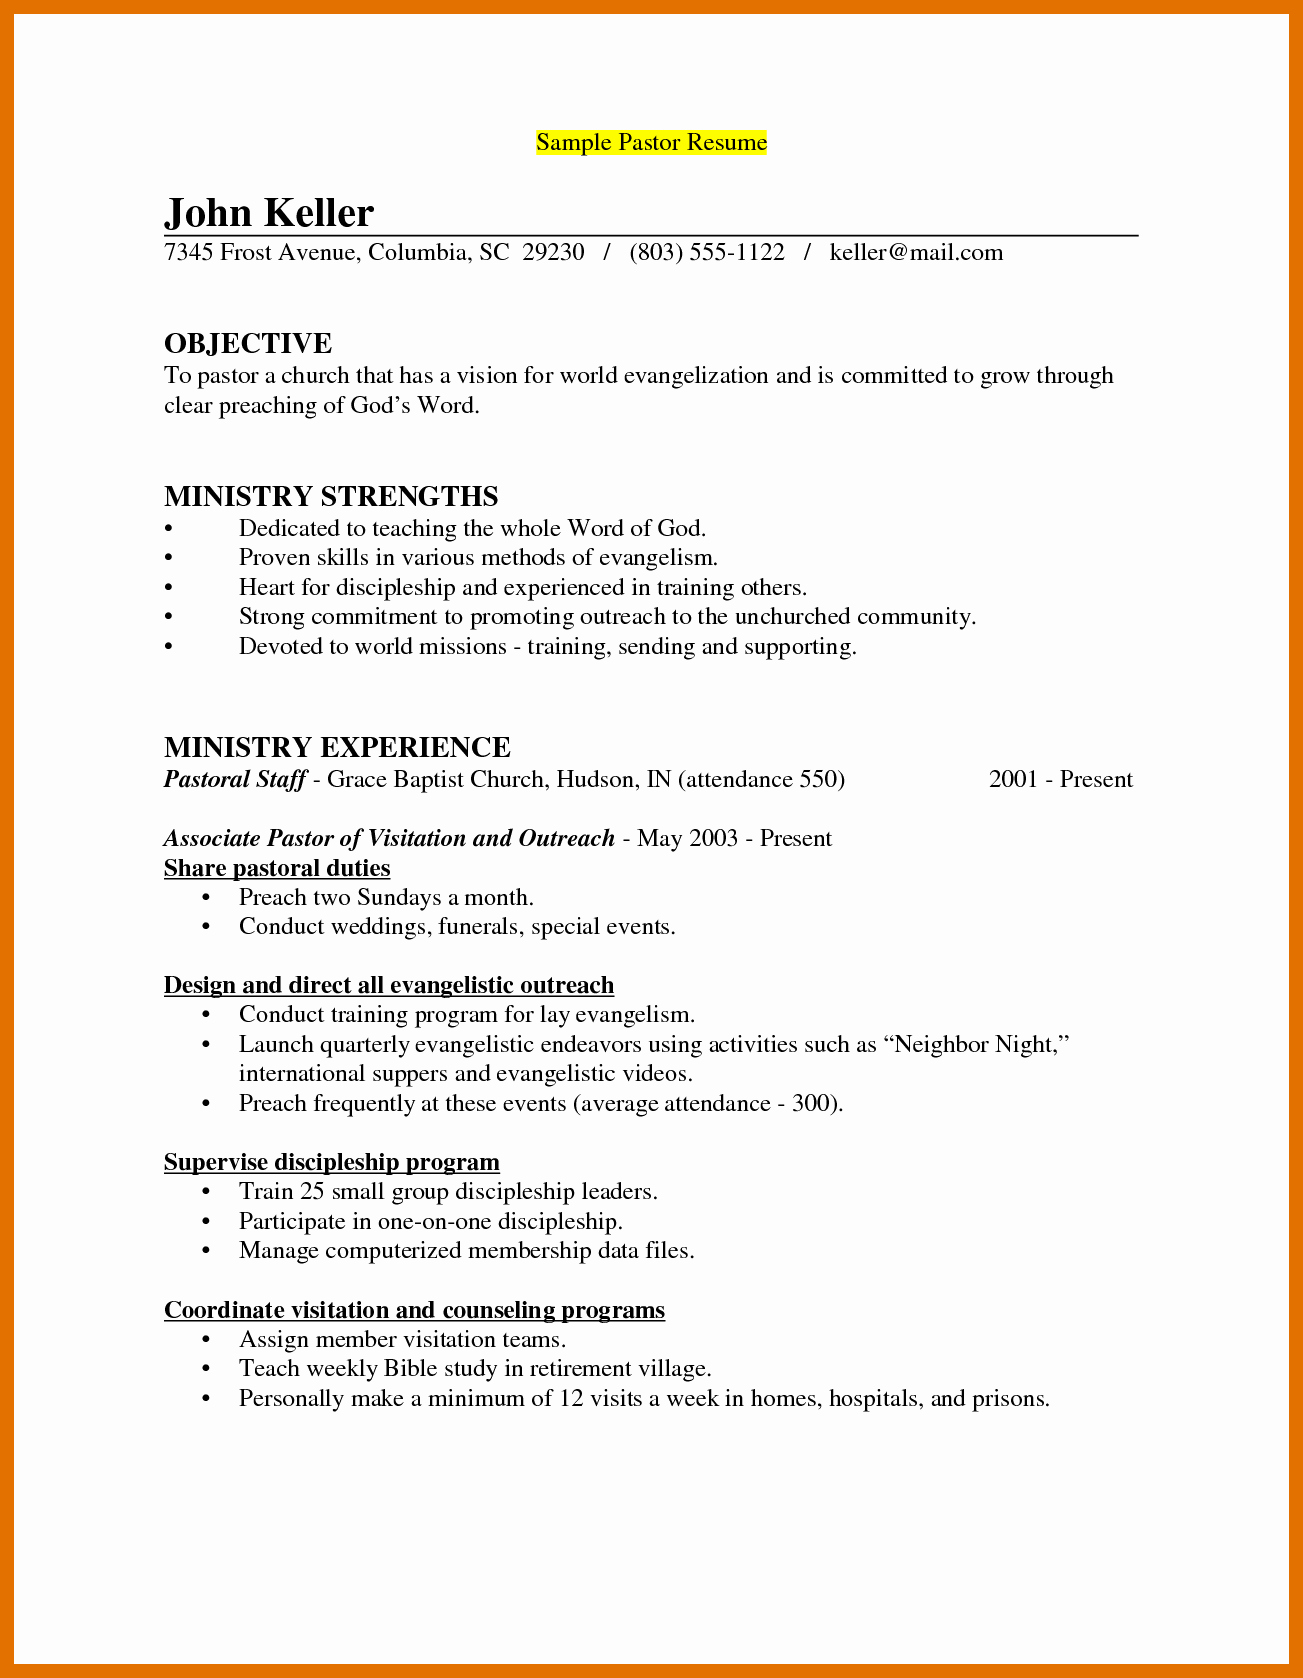 Resume Template for Teens Fresh 7 8 Resume Objective Examples for Teenagers